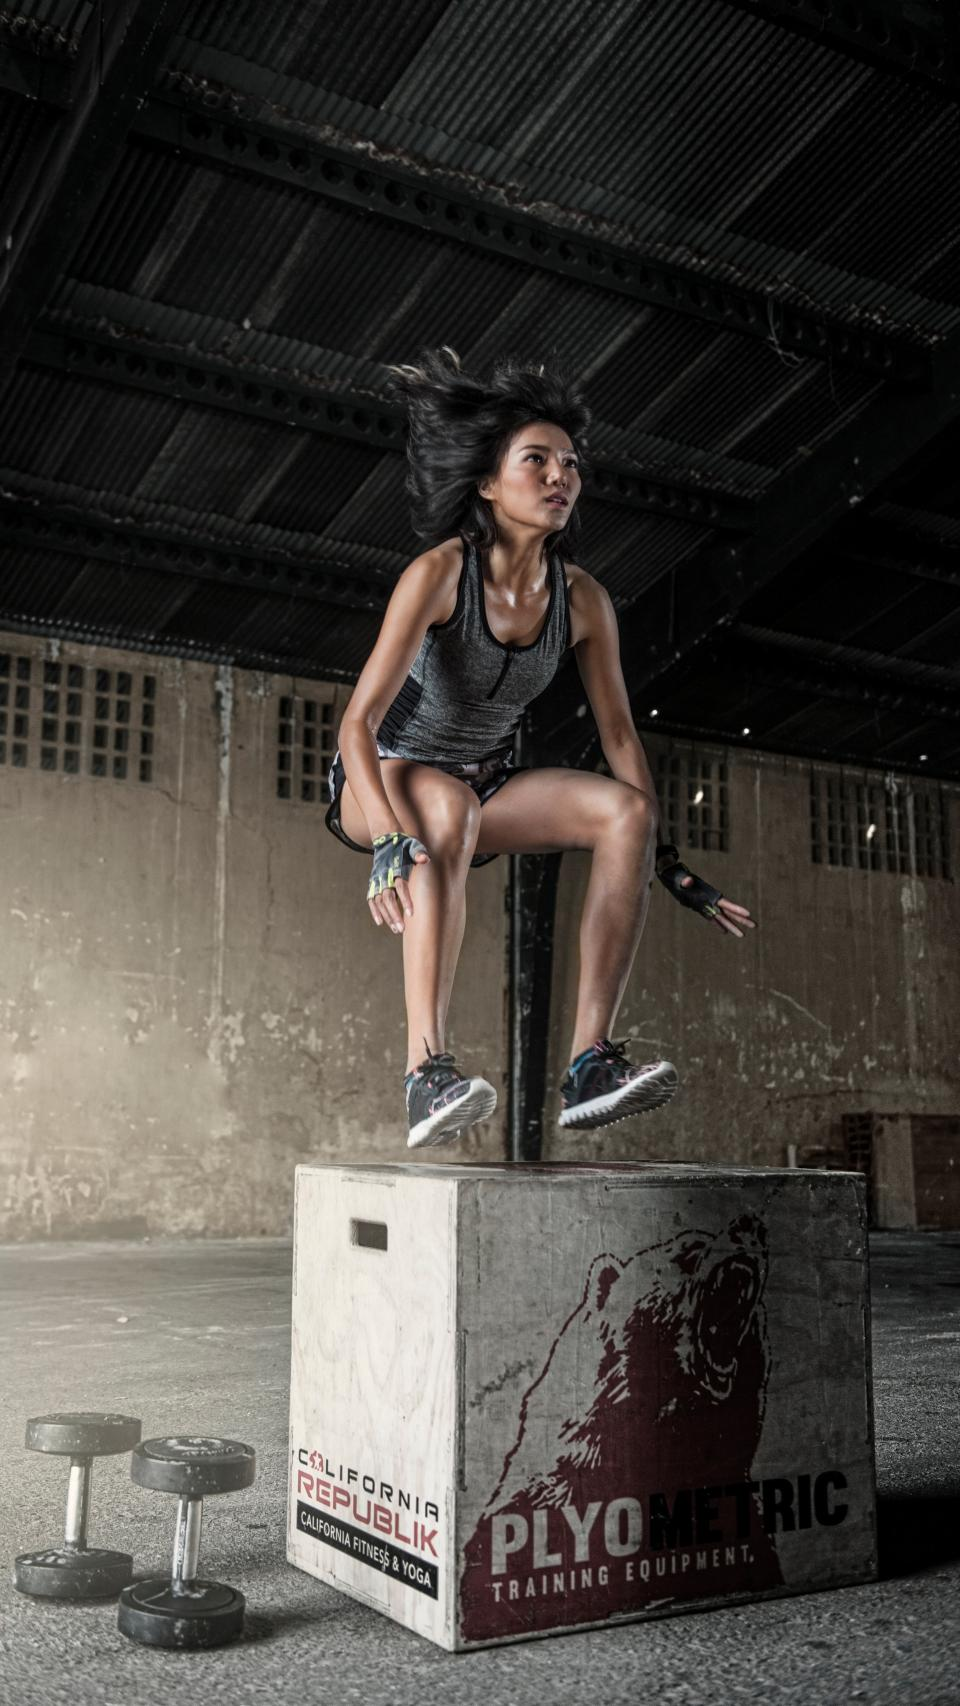 people, girl, exercise, fitness, health, gym, box, dumbbell, workout